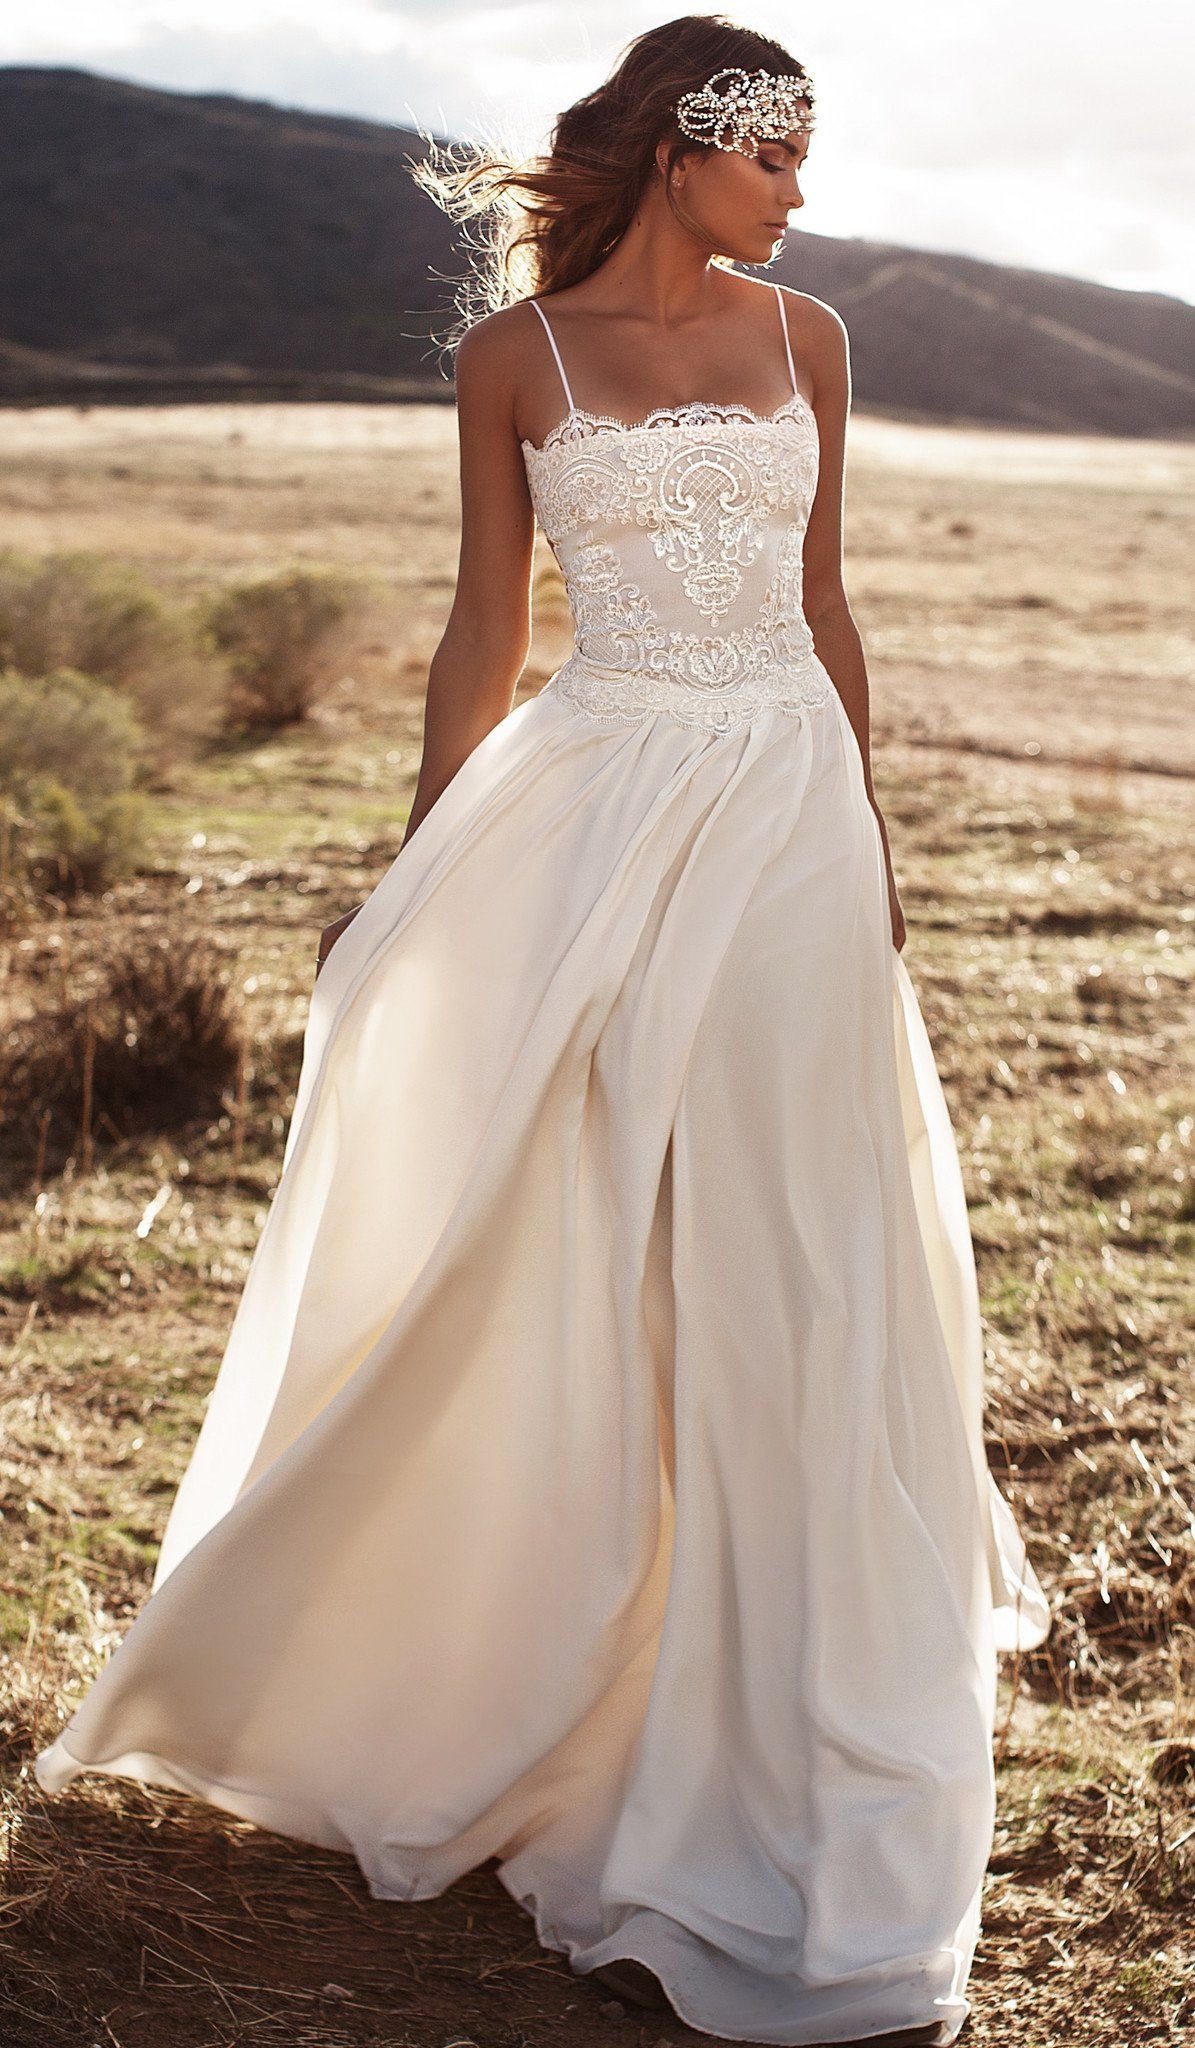 Inspired by the Lurelly Mari Boho Beach Gown | saty | Pinterest ...